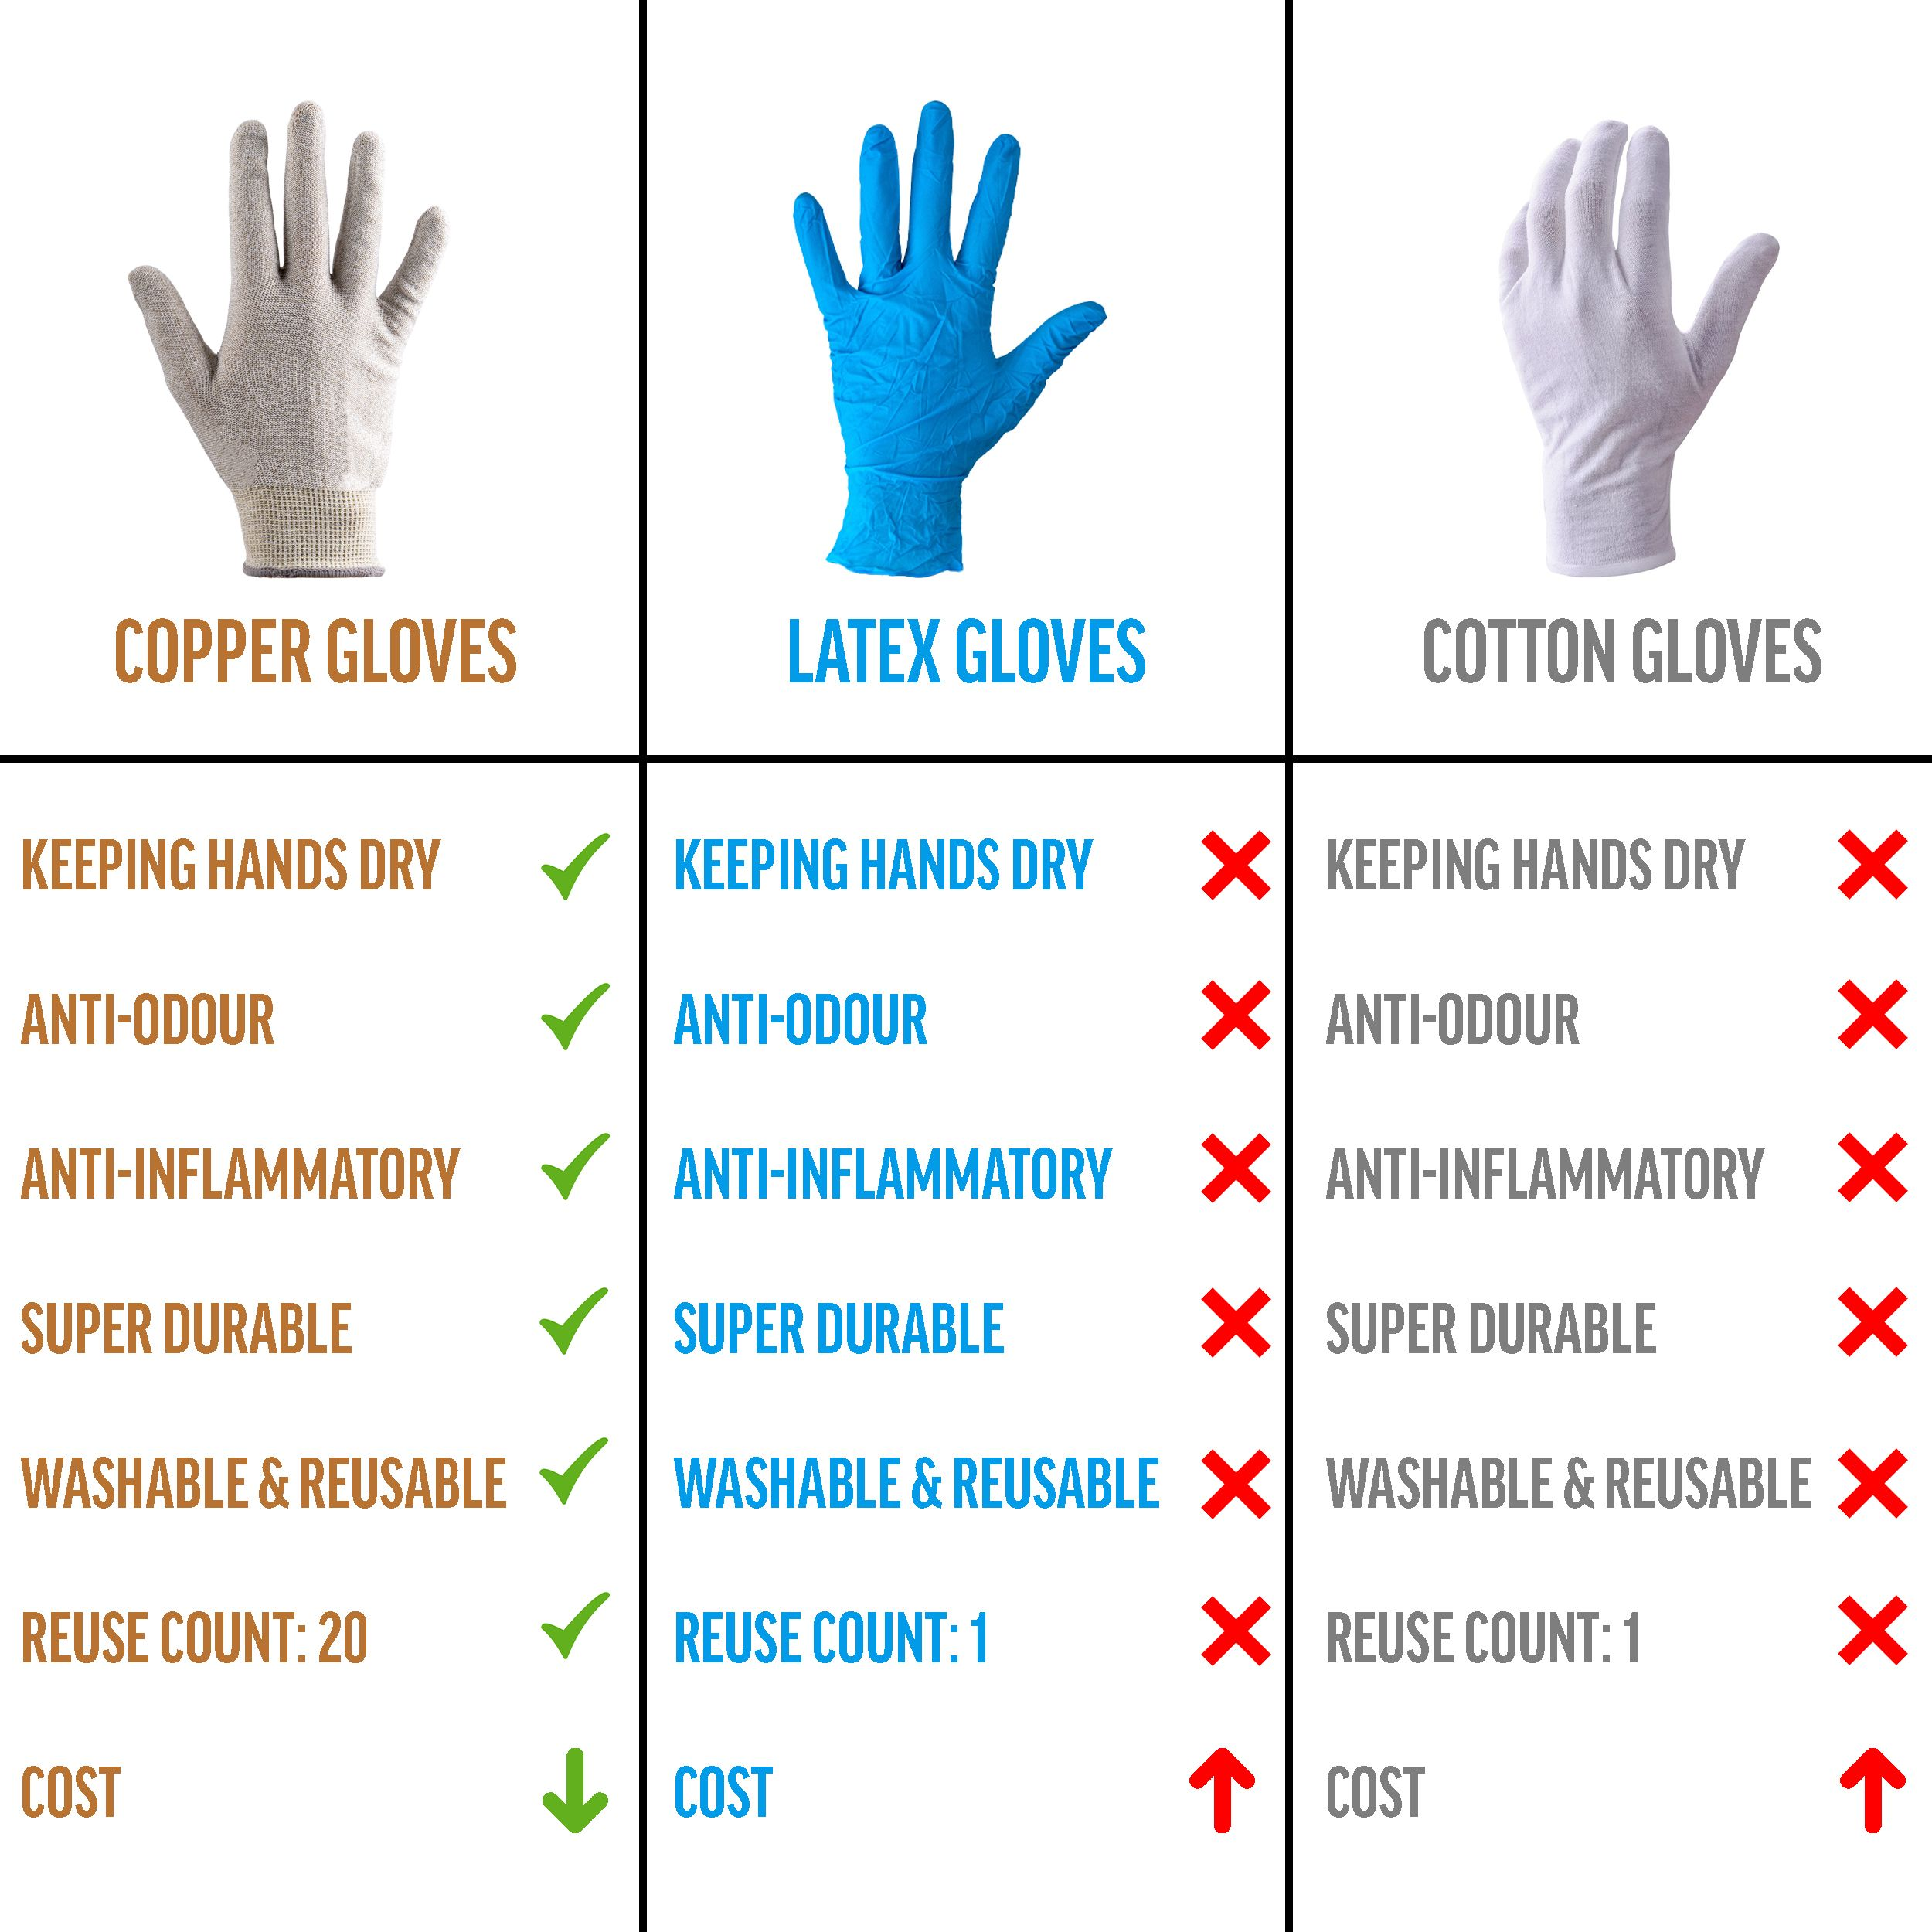 Why copper gloves better fun facts cool things to